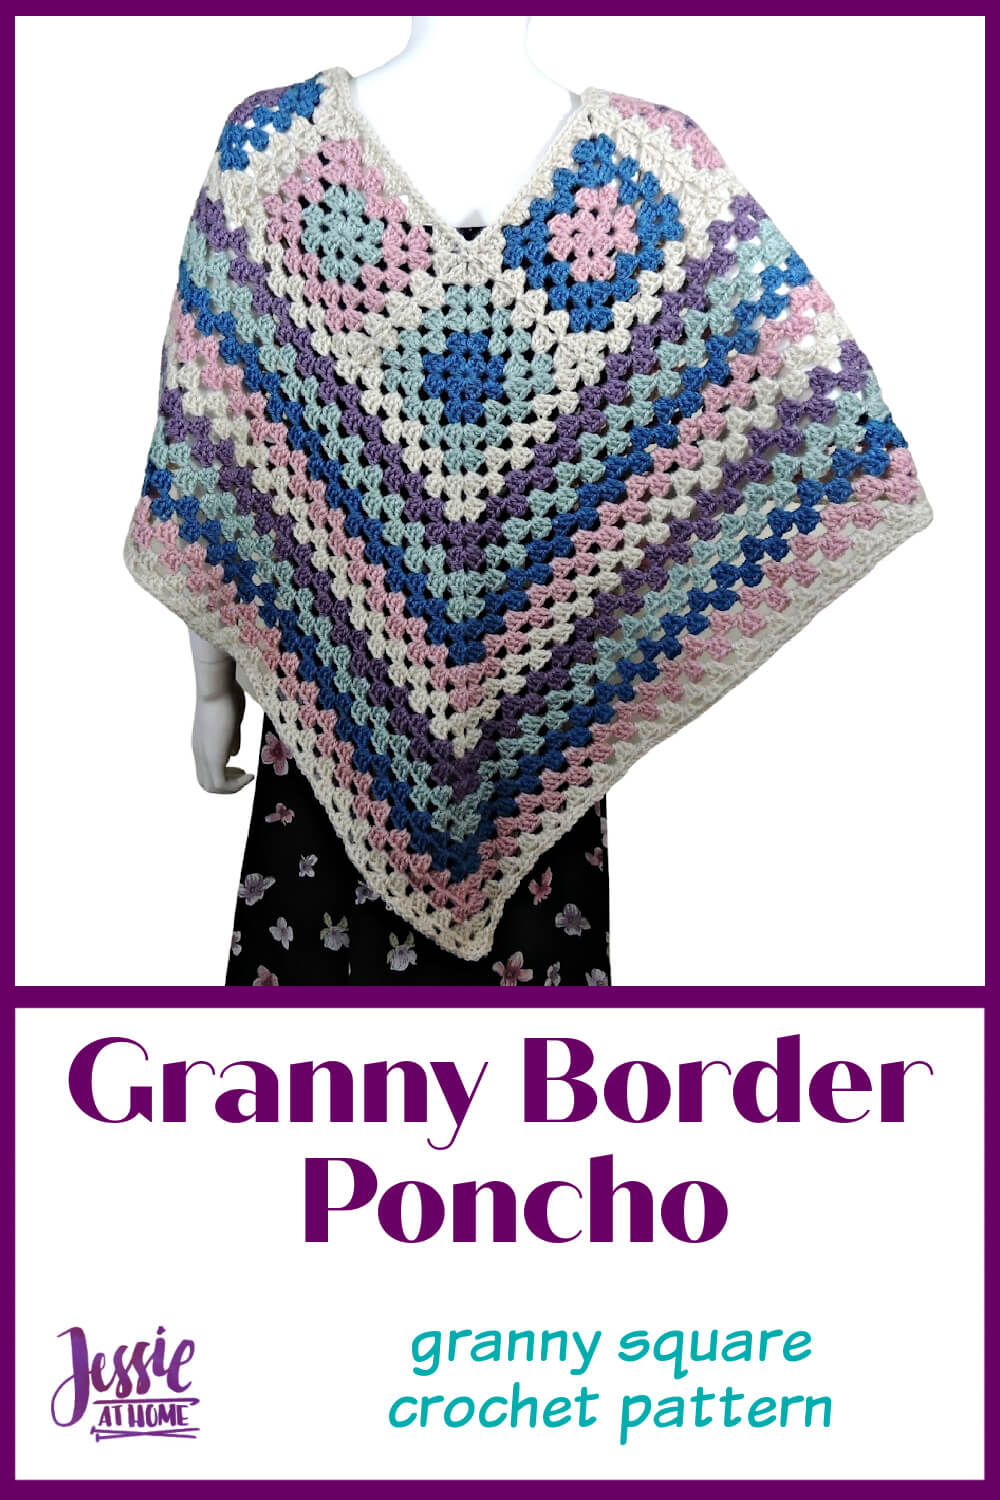 Granny Border Poncho - because Granny Squares are in!